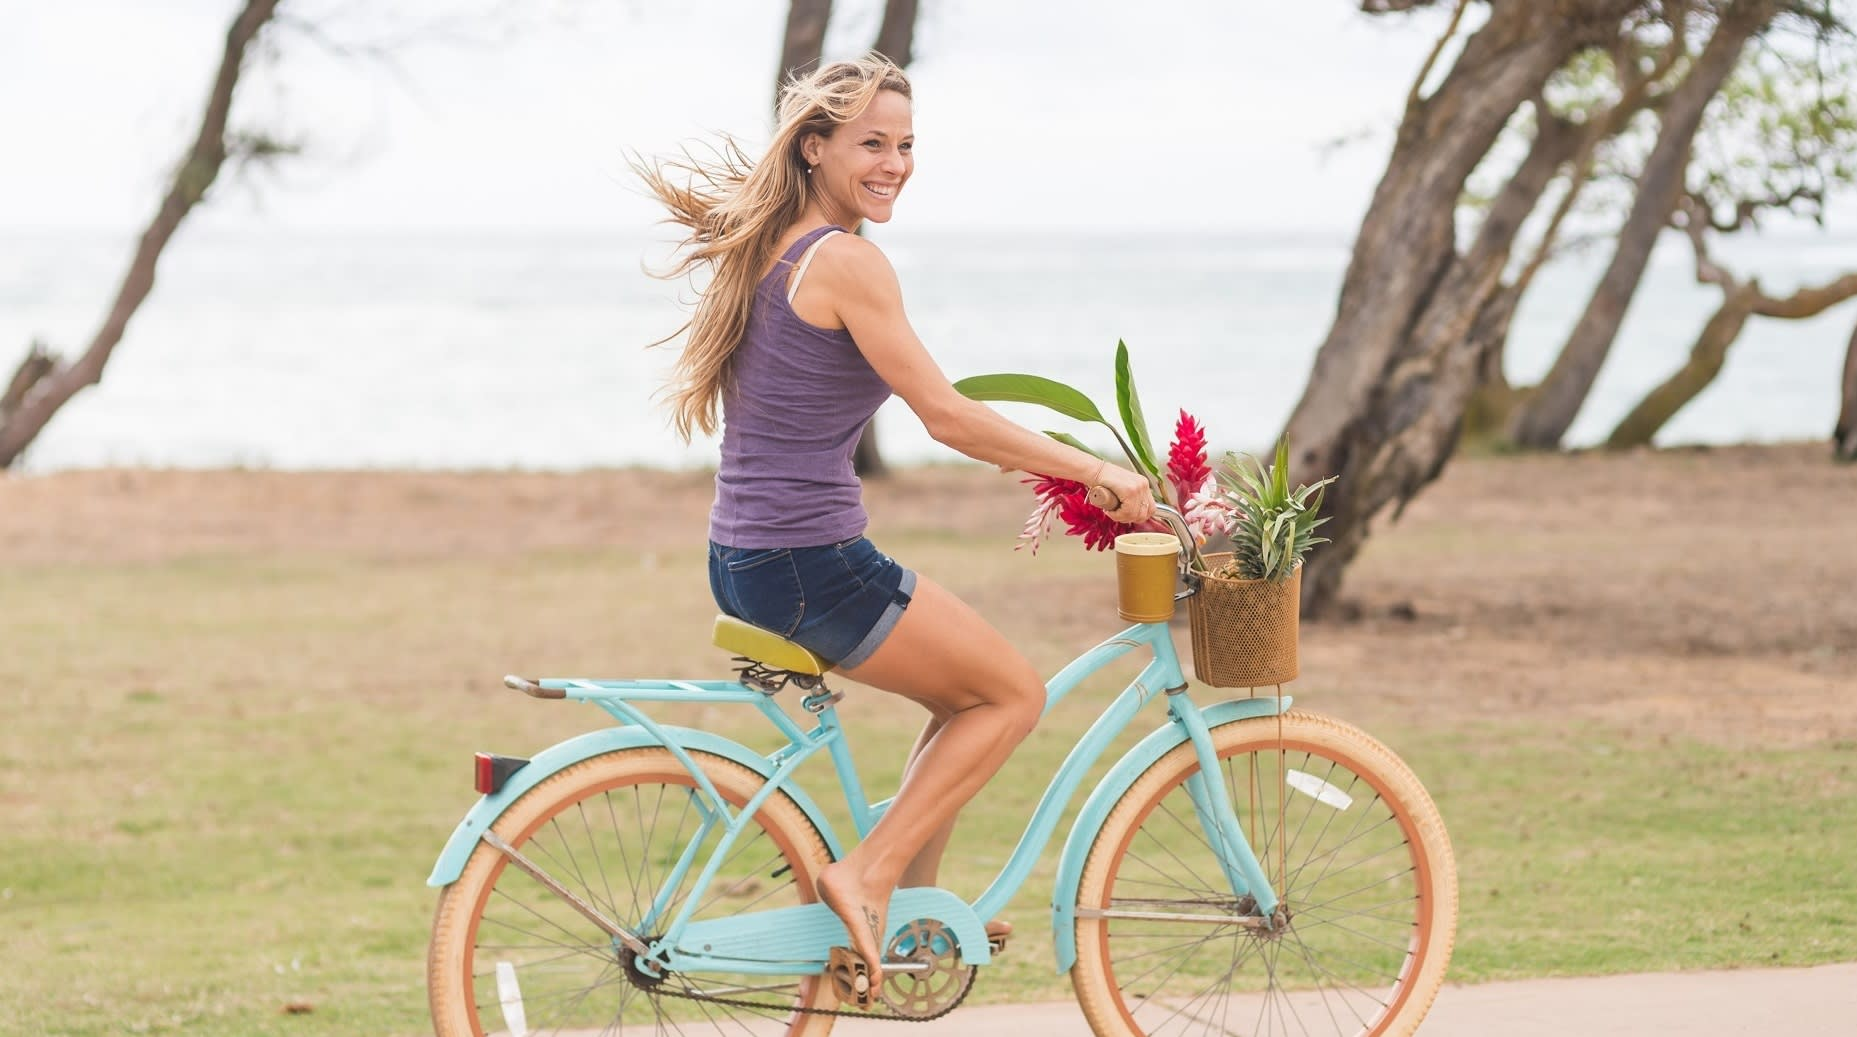 Hawaii - One of the Top-5 Places to Live in the U.S.